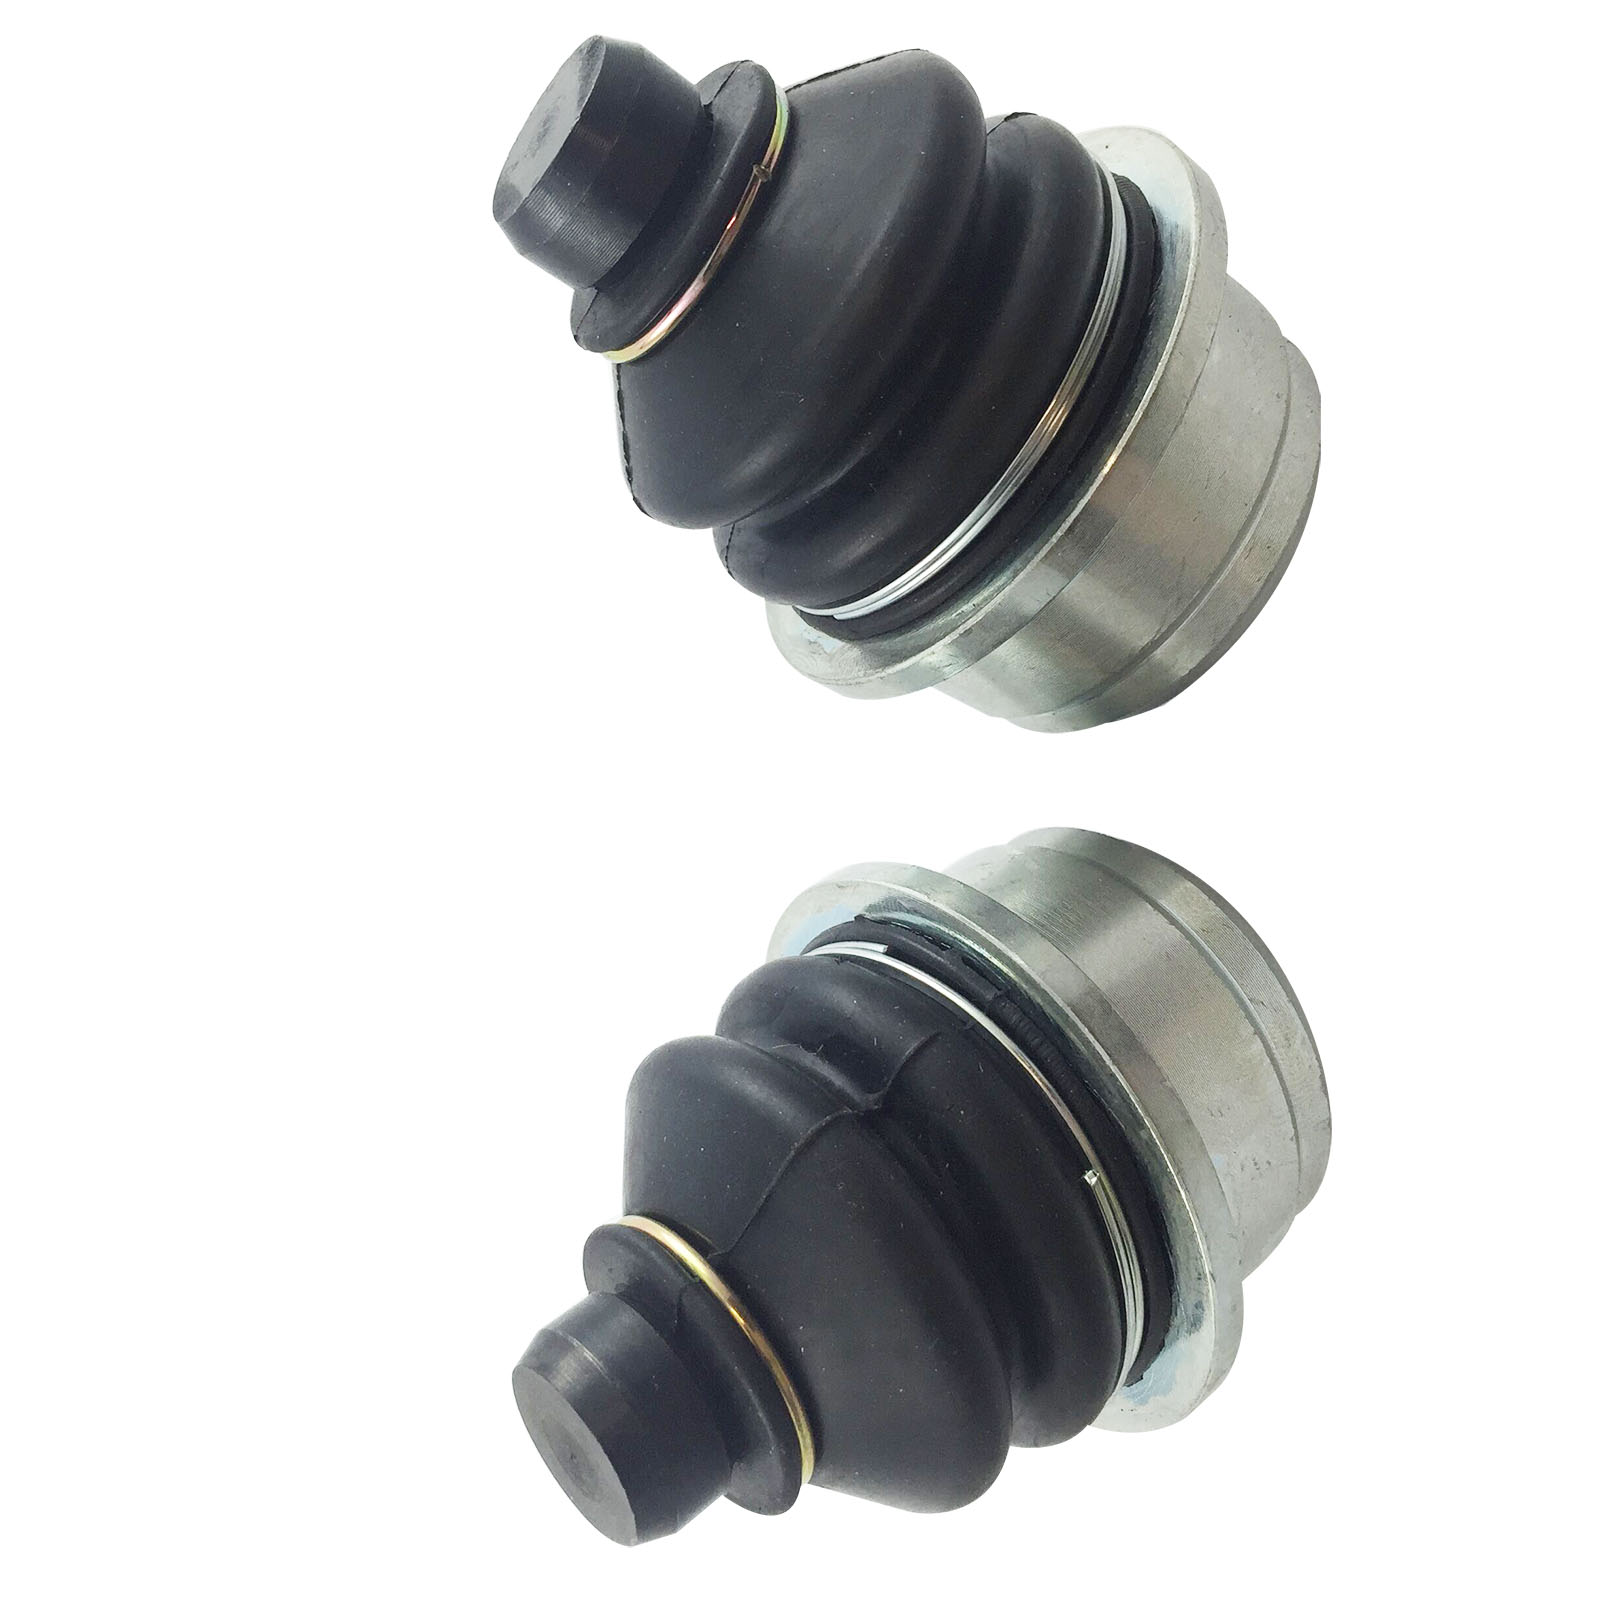 Ball Joint Kit Upper Fit For Ford Falcon AU-1/2/3 BA BF Fairlane LTD BJ425 Front 1 Pair image